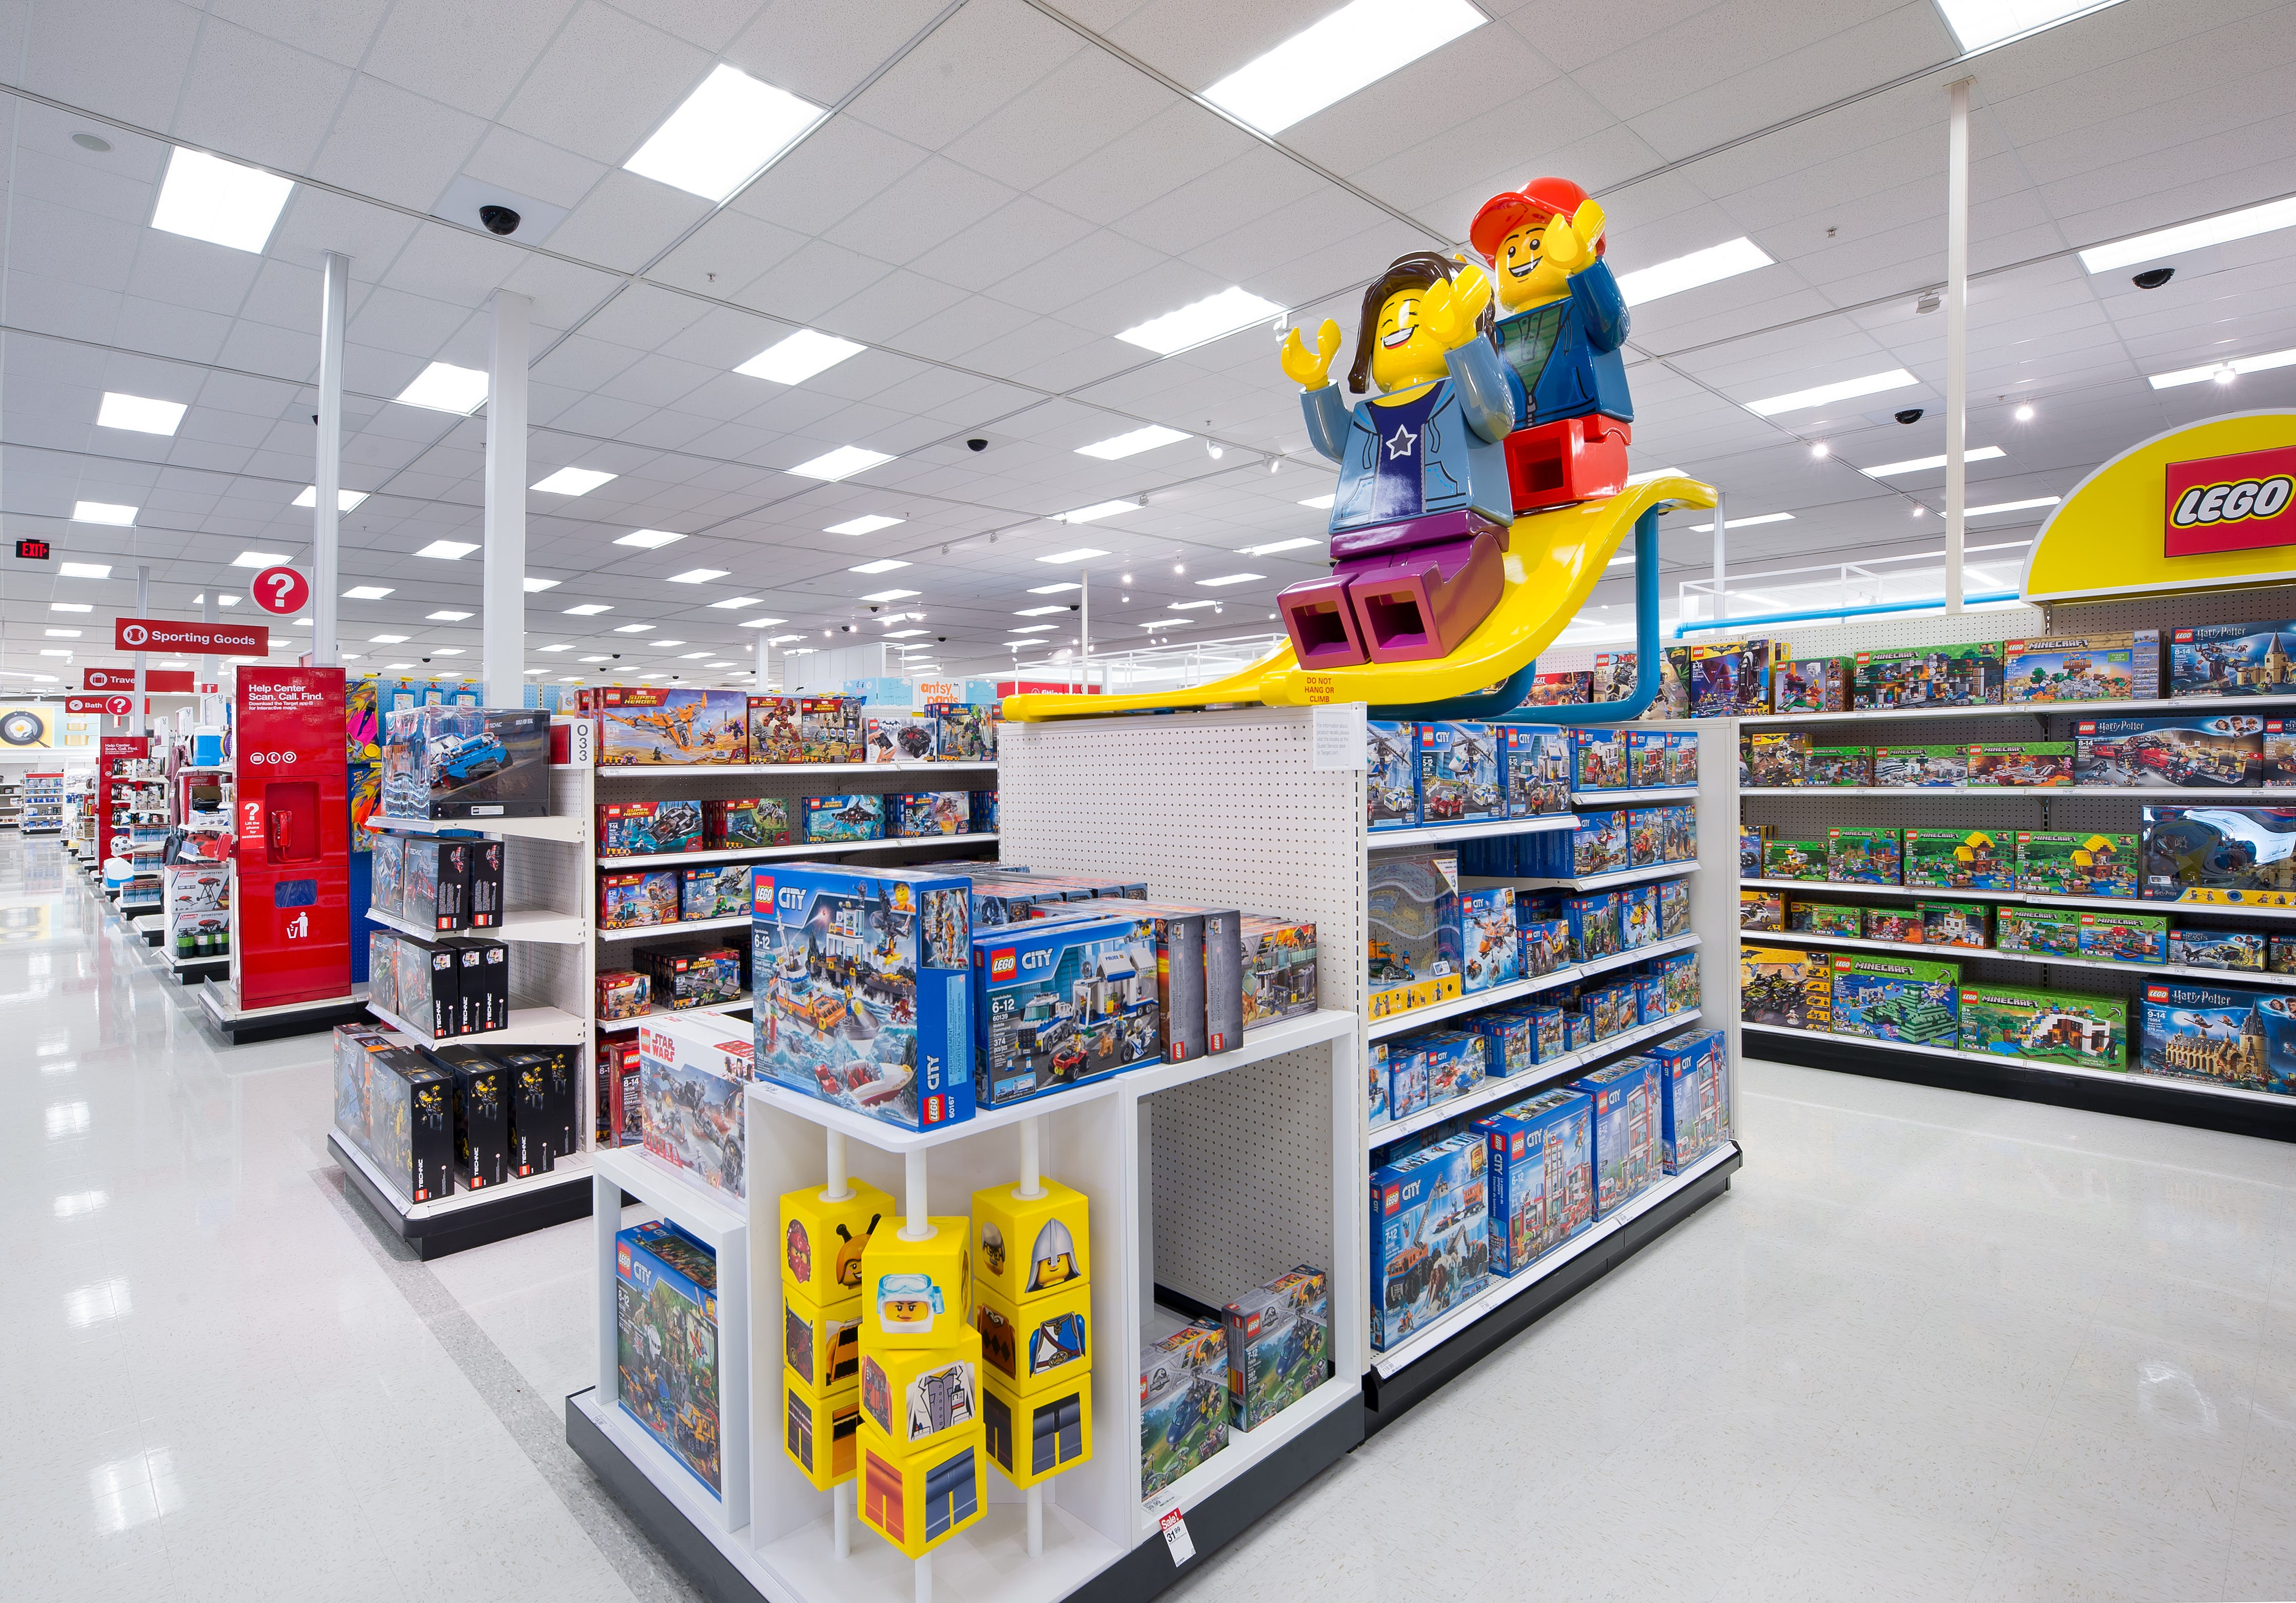 Toys From Target : Target to offer more toys and space in first season without toys r us